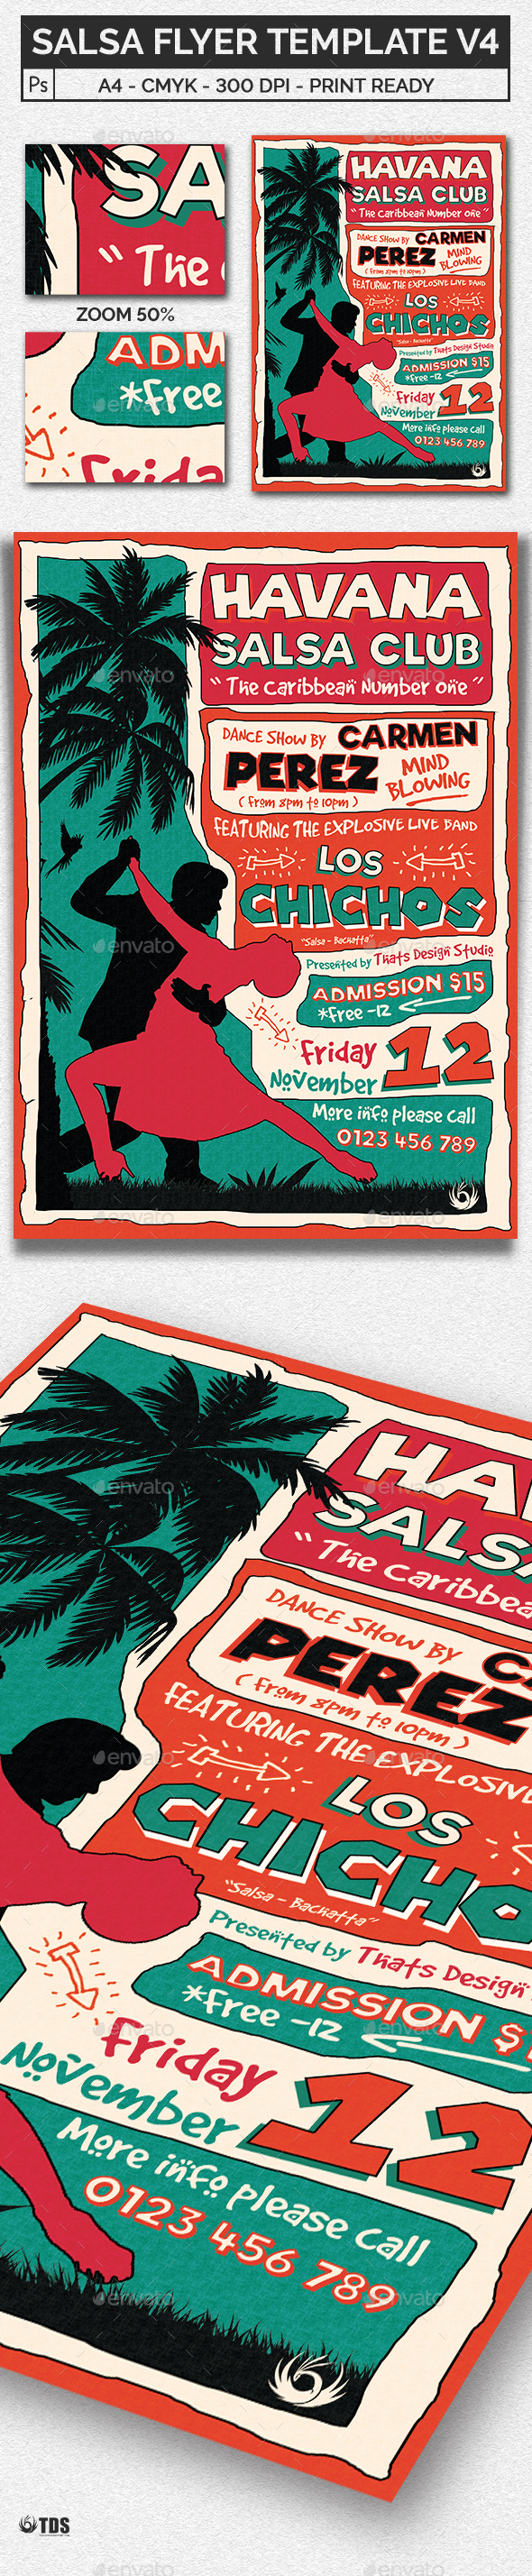 Salsa Flyer Template V4 - Events Flyers